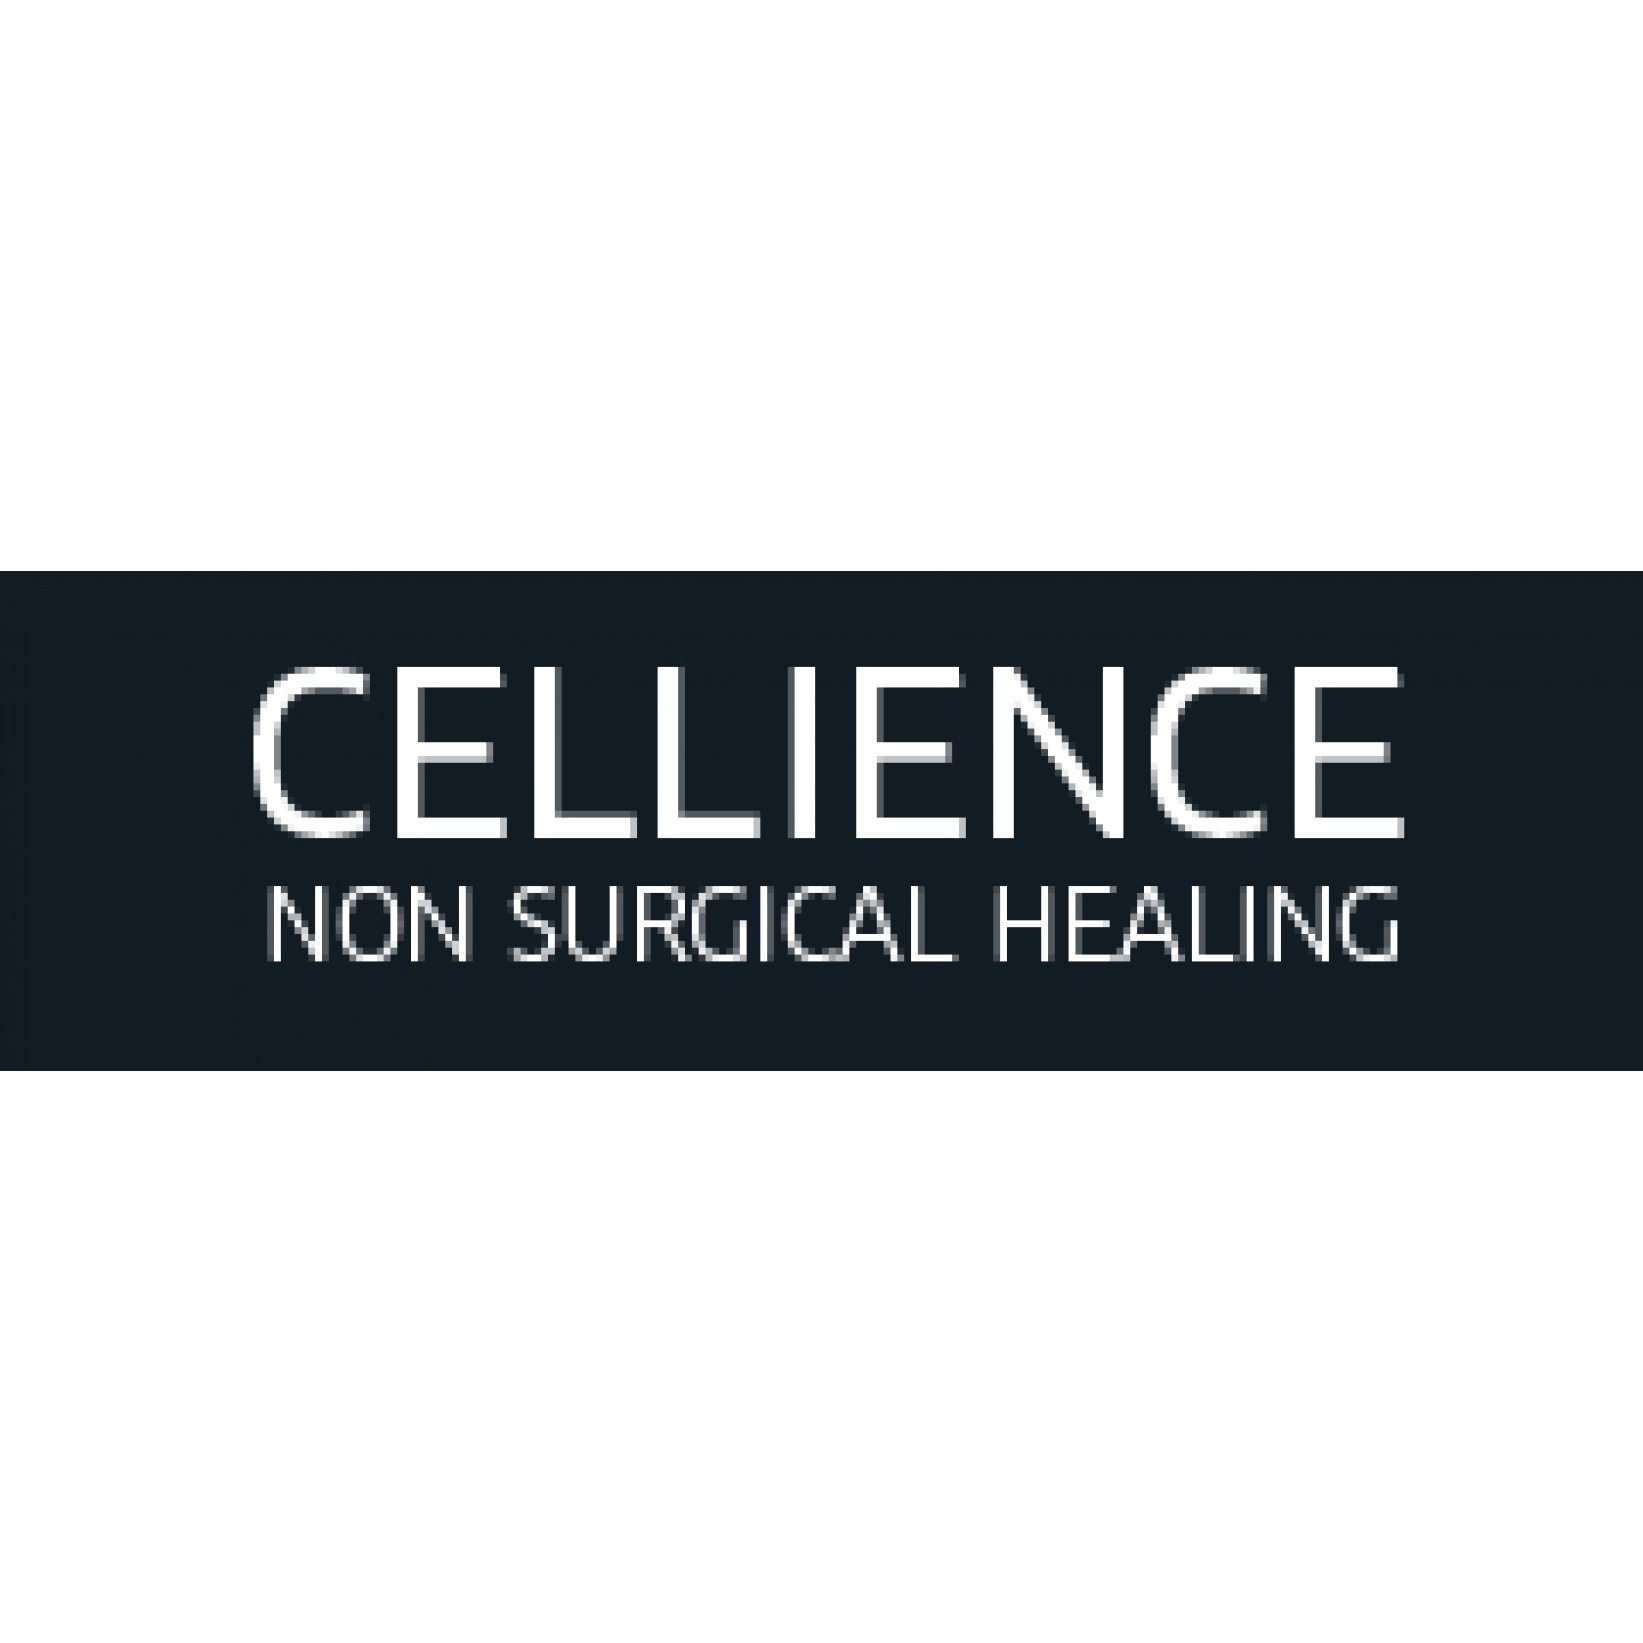 Cellience